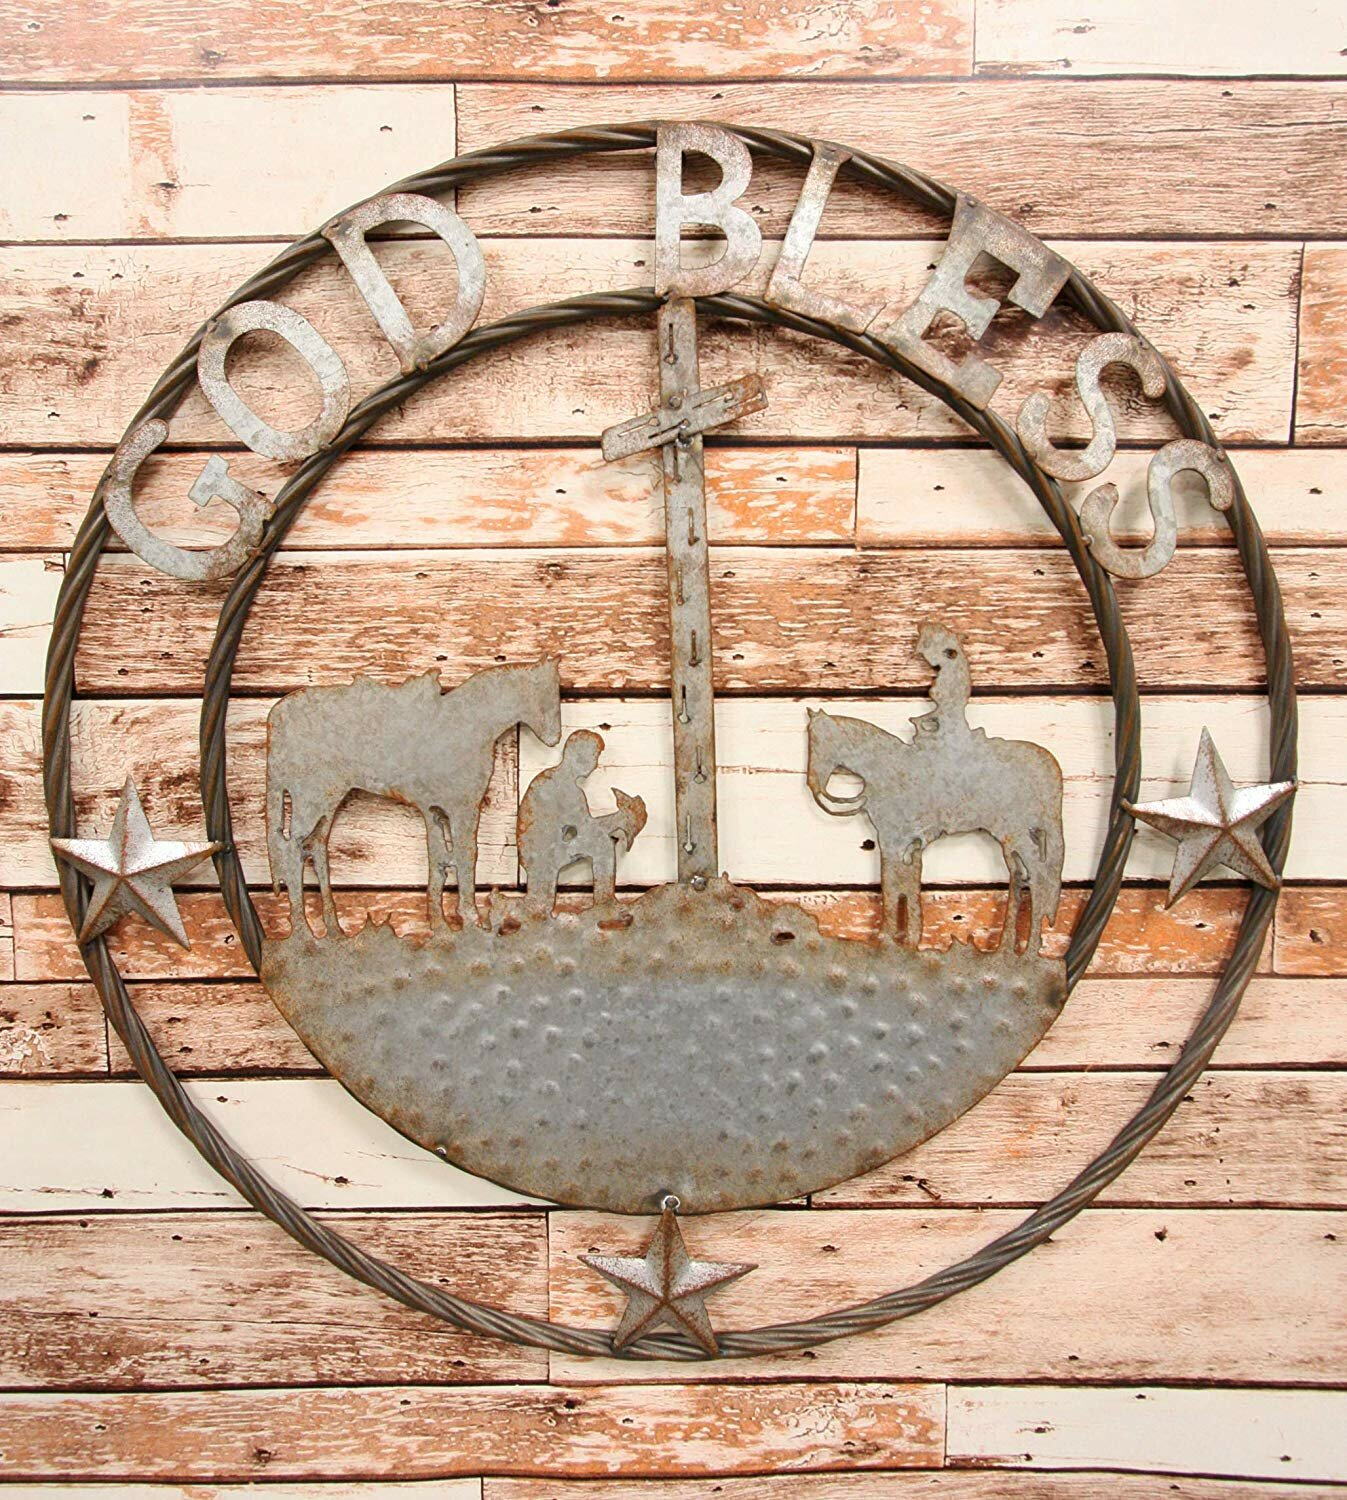 BOOTS SPURS WALL WORD SIGN RUSTIC WESTERN METAL ART VINTAGE COUNTRY BATH DECOR